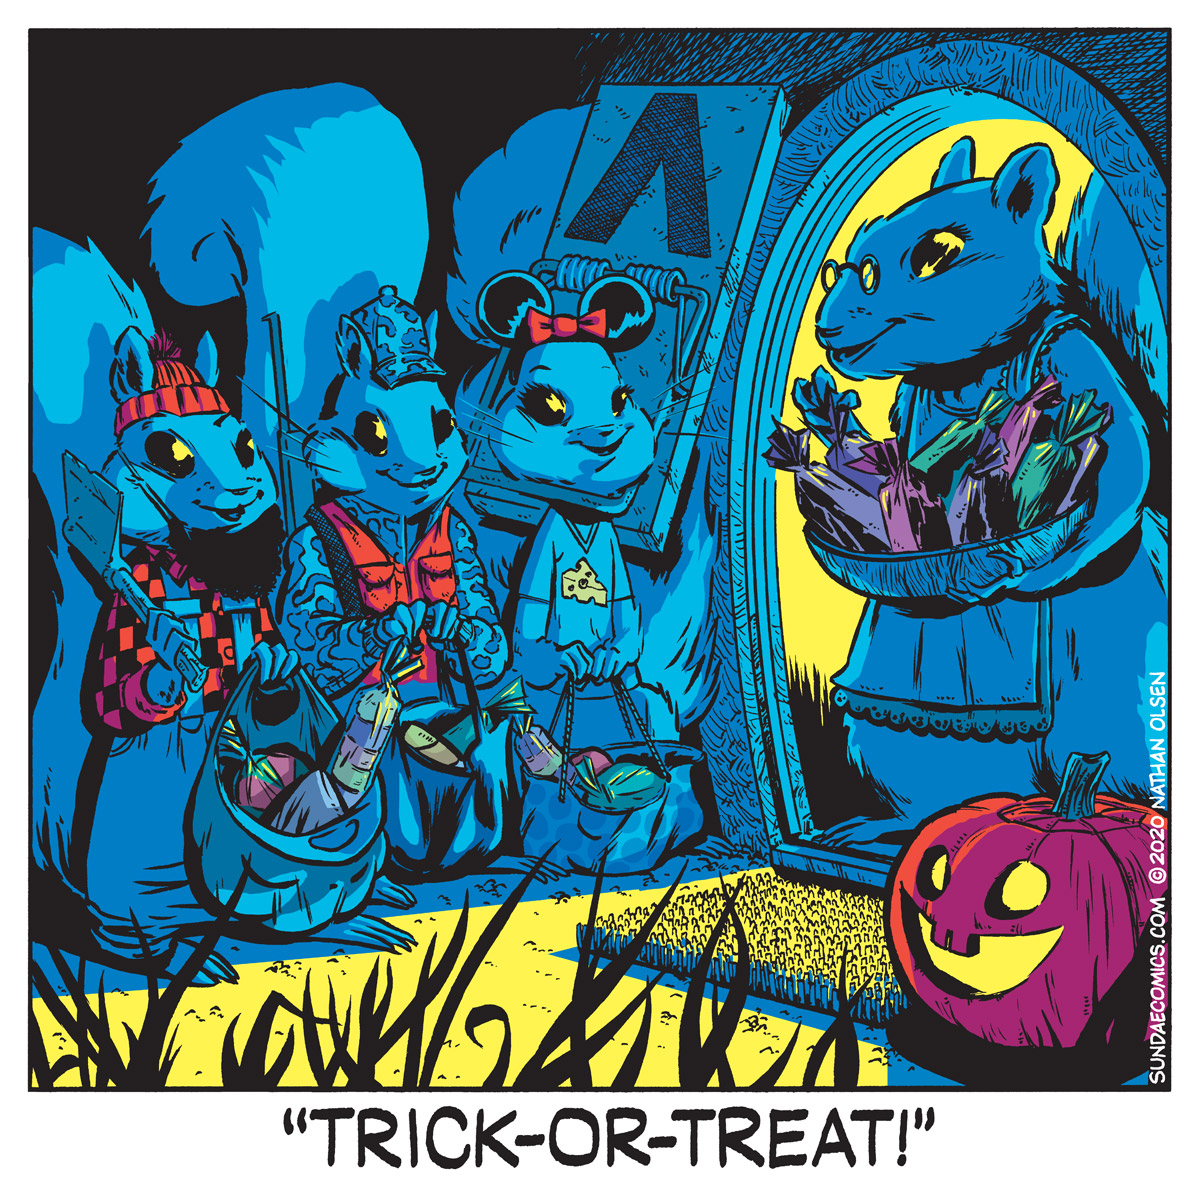 A webcomic about some kids who go trick-or-treating. But they're squirrels. It's cute.